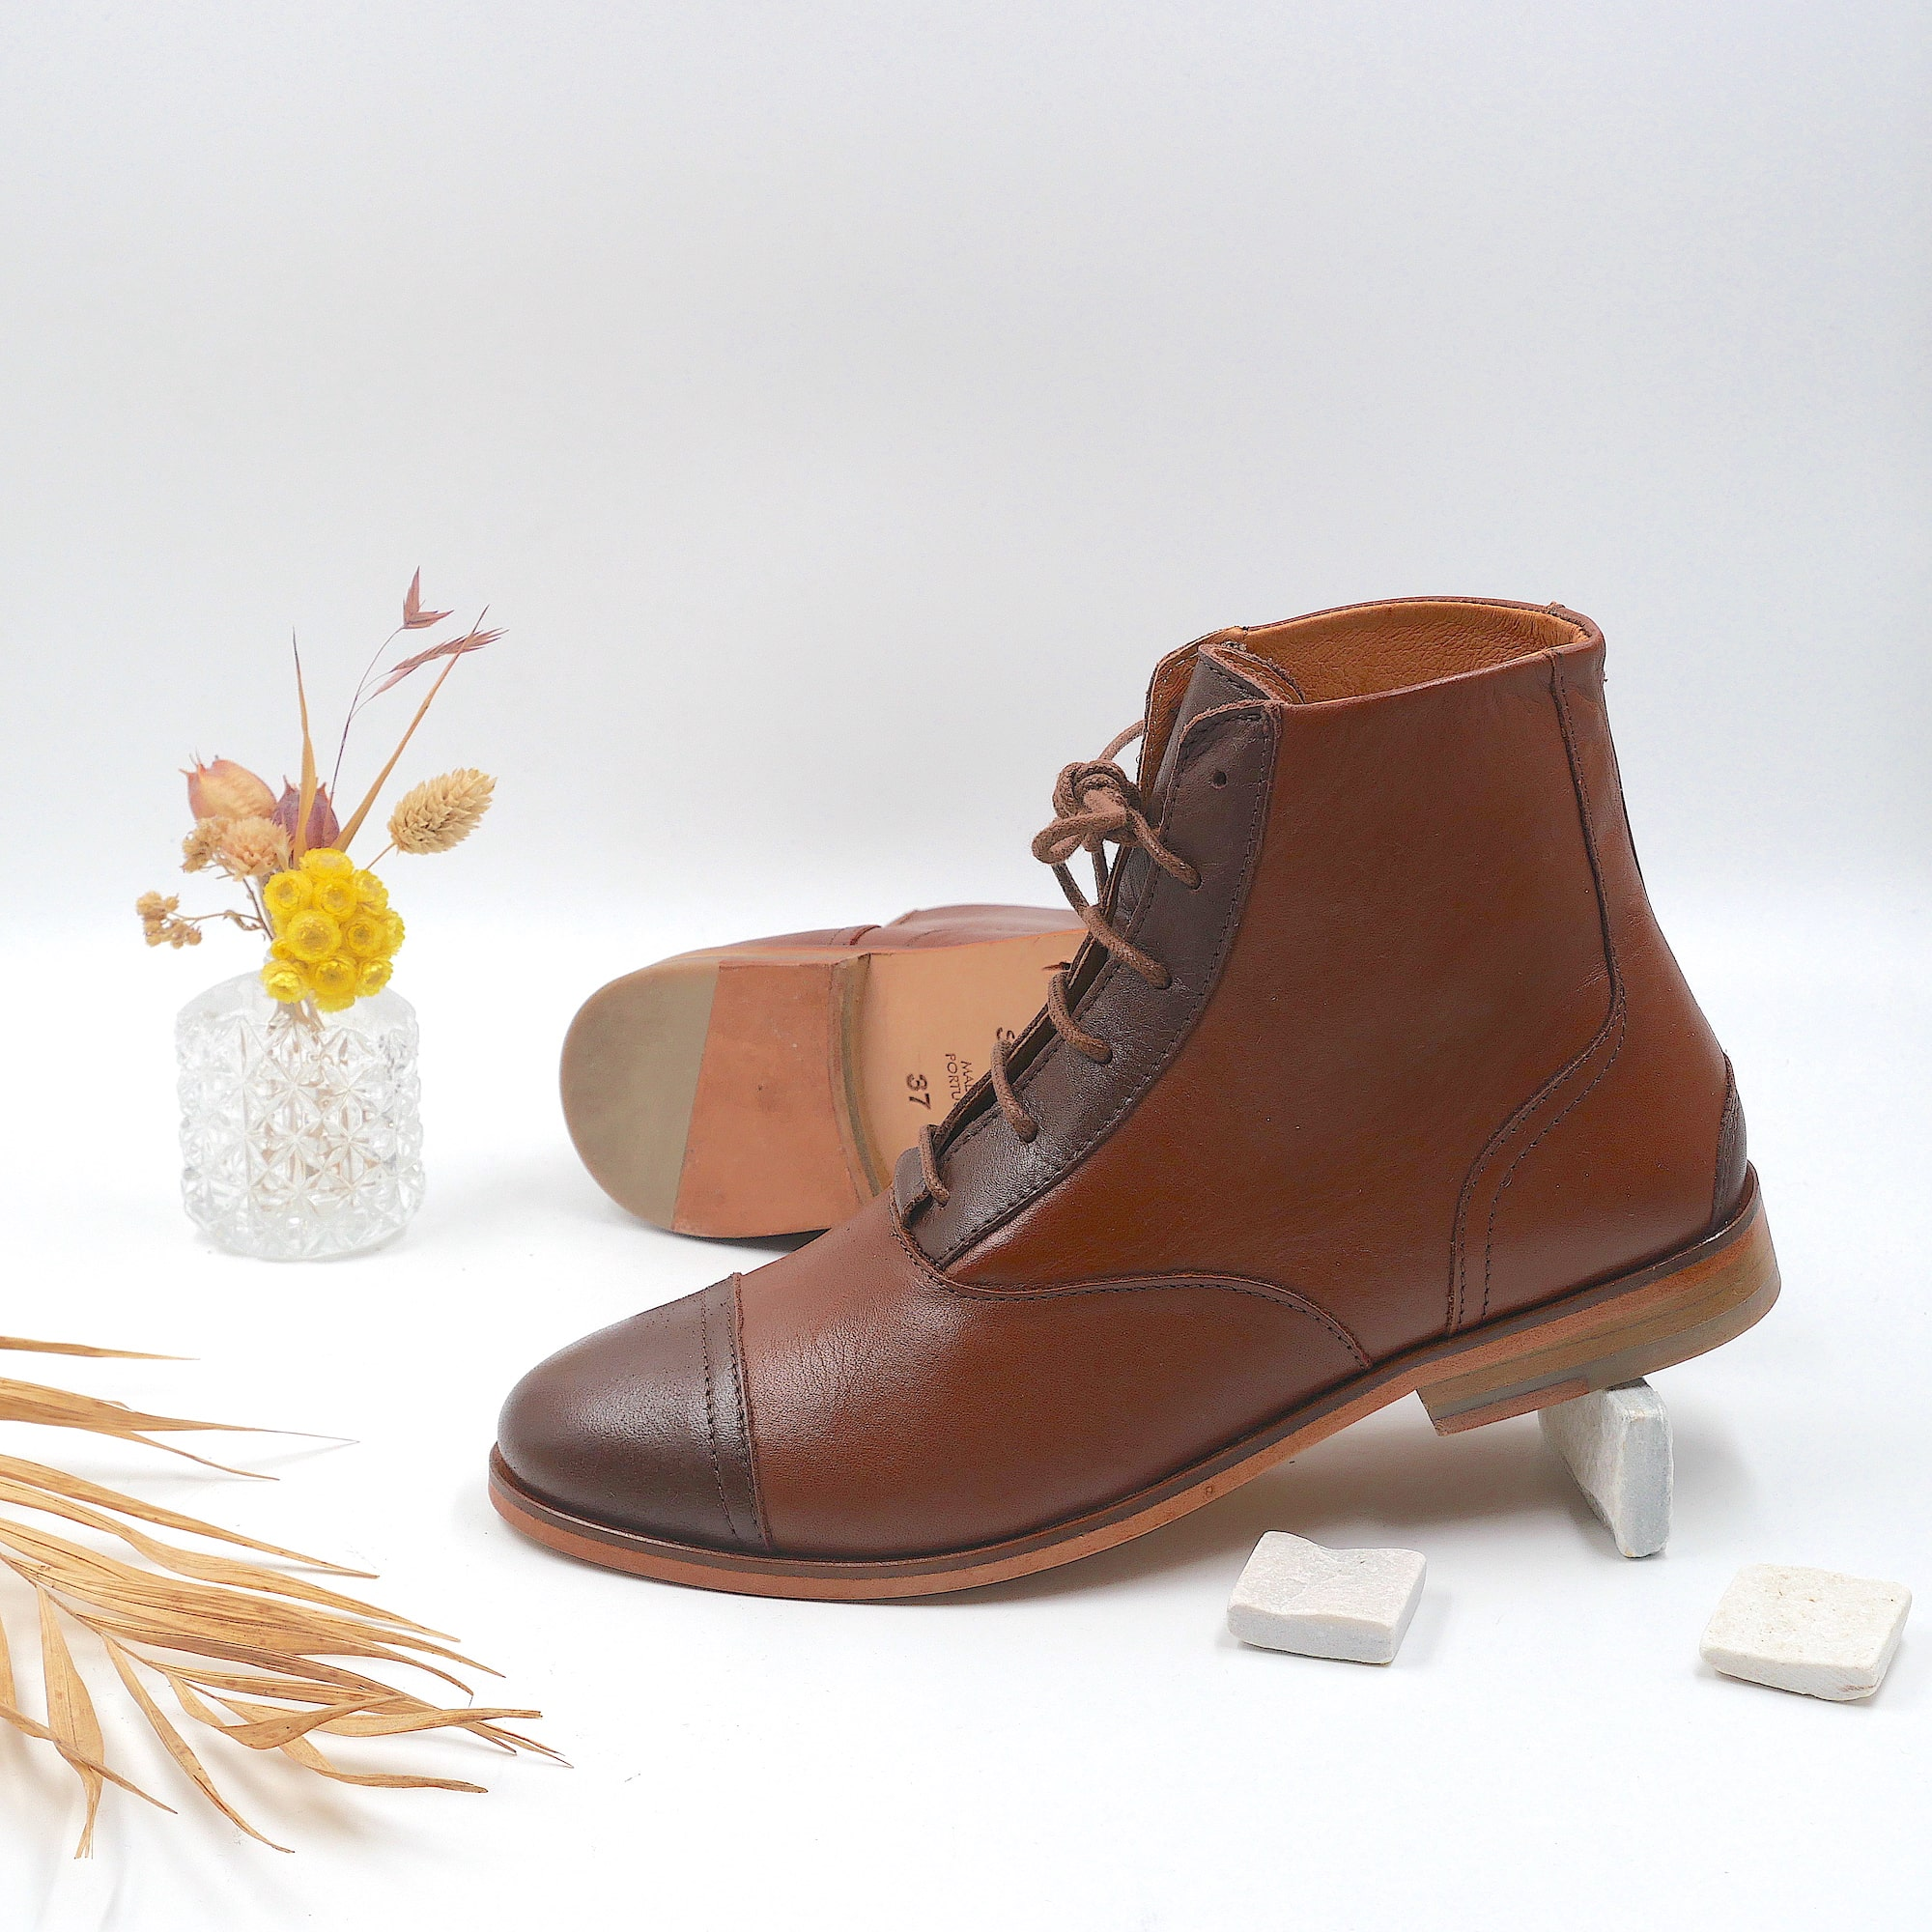 Mama Chestnut Brown and dark-brown boots picture